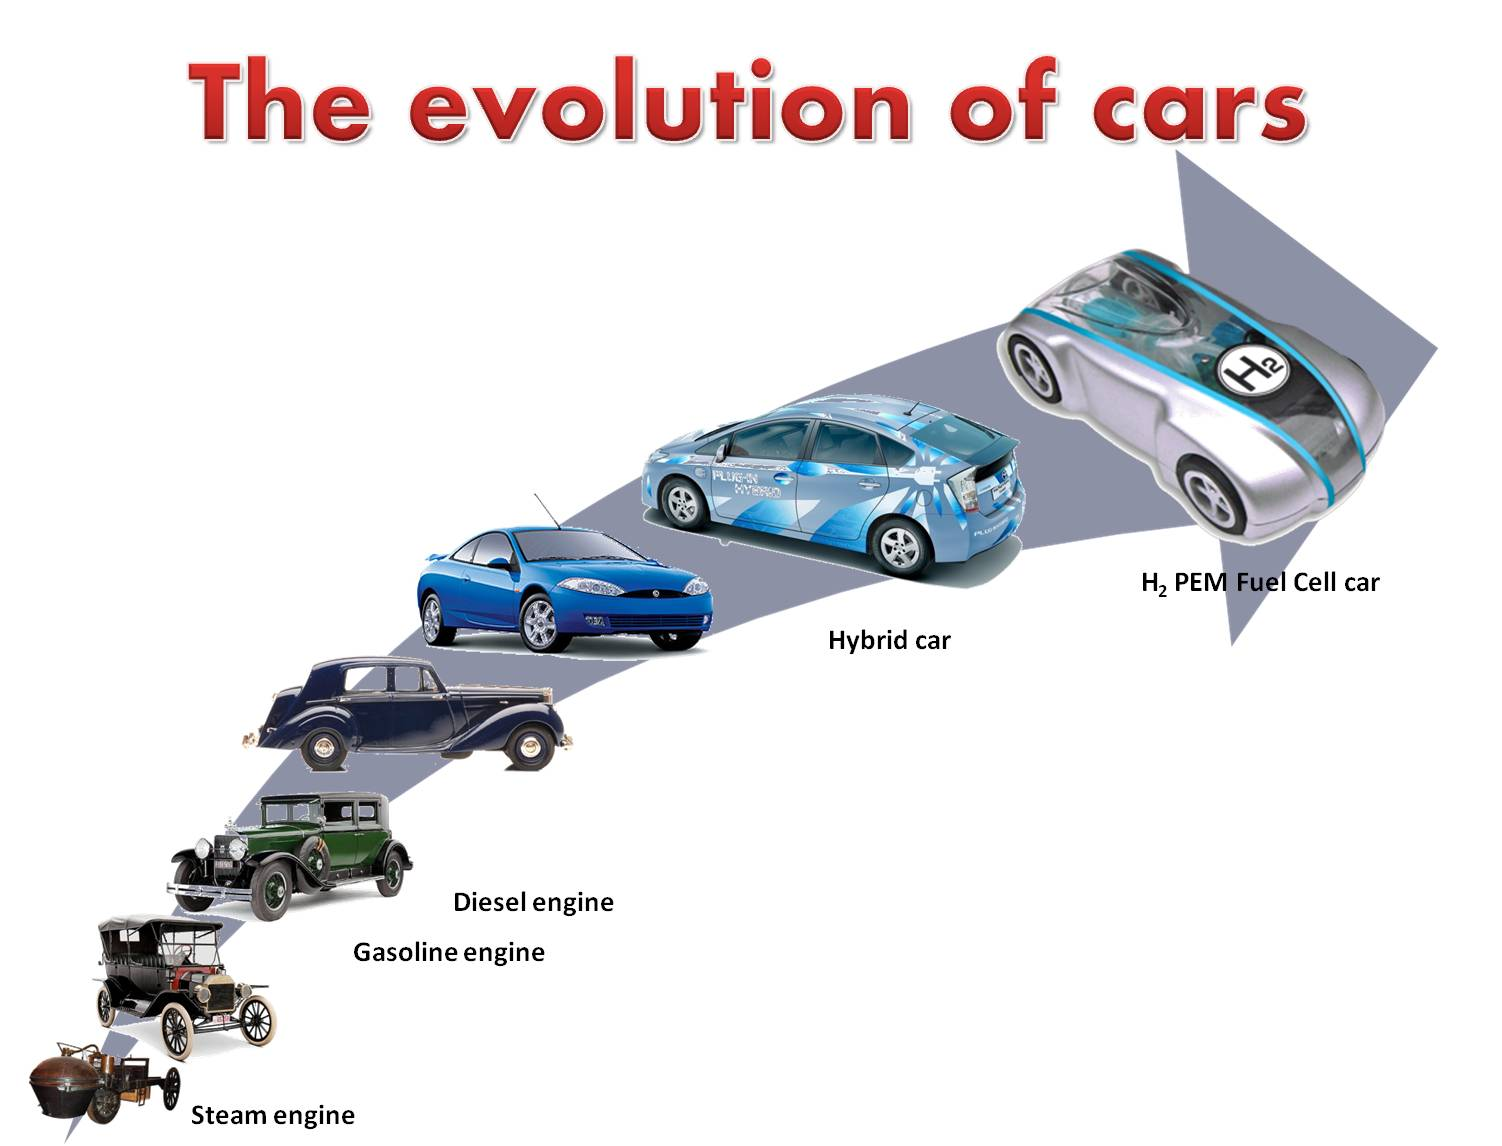 information technology in automobile industry Provides information on automotive industry in european union and access to documents such as legislative proposals foreign technology in china's automobile industry: implications for energy, economic development, and environment.